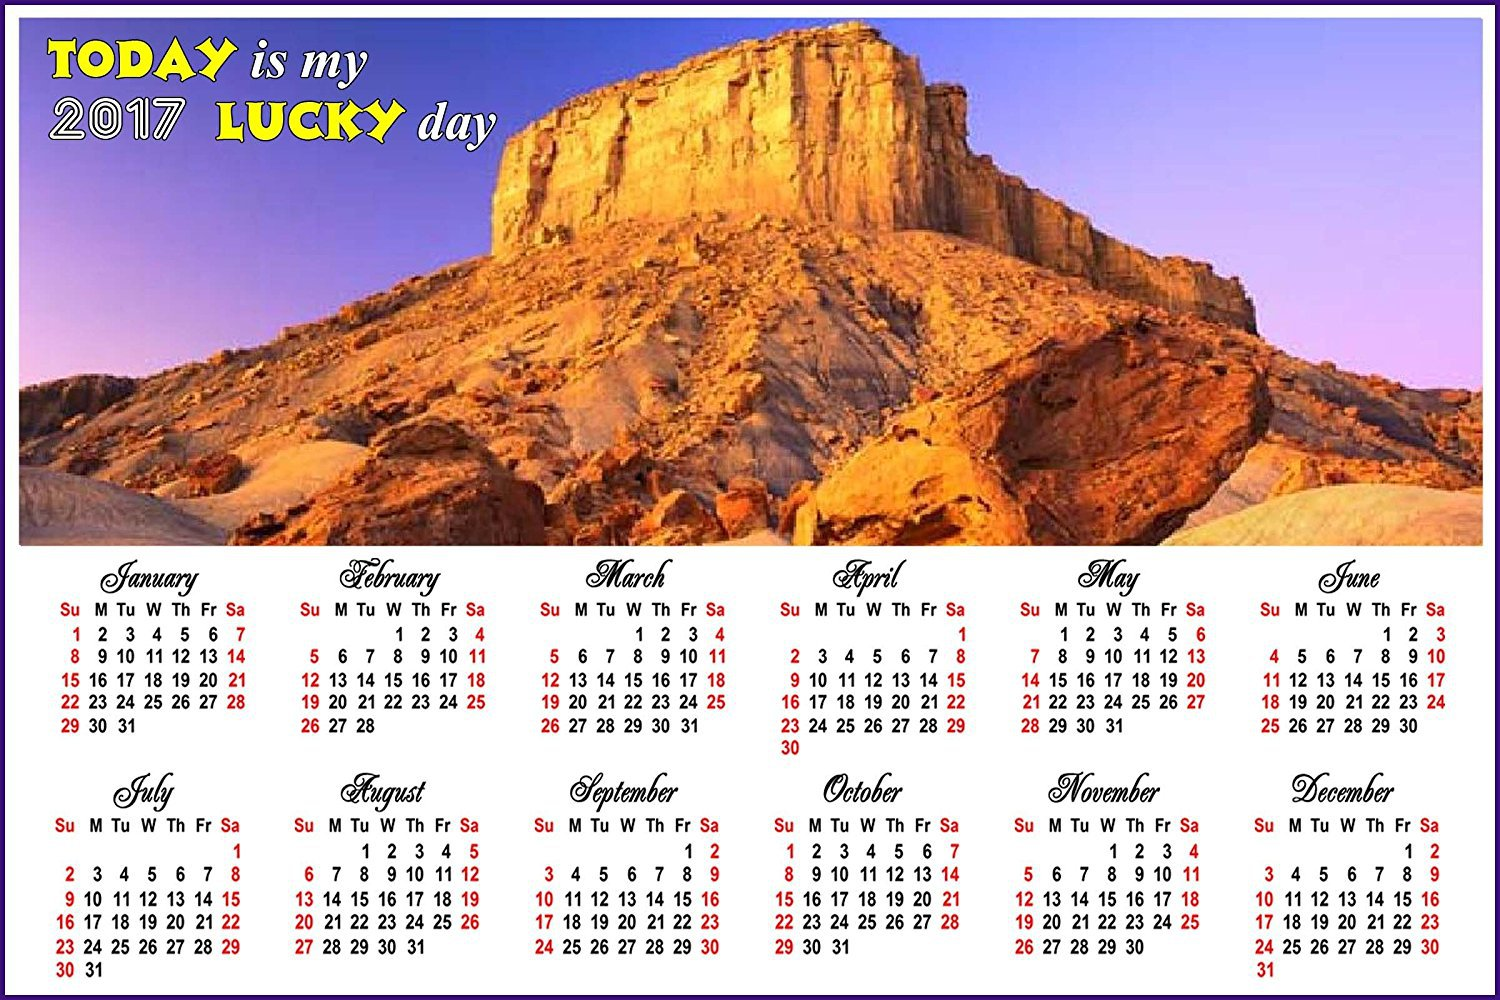 2017 Magnetic Calendar - Calendar Magnets - Today is my Lucky Day - Edition #12